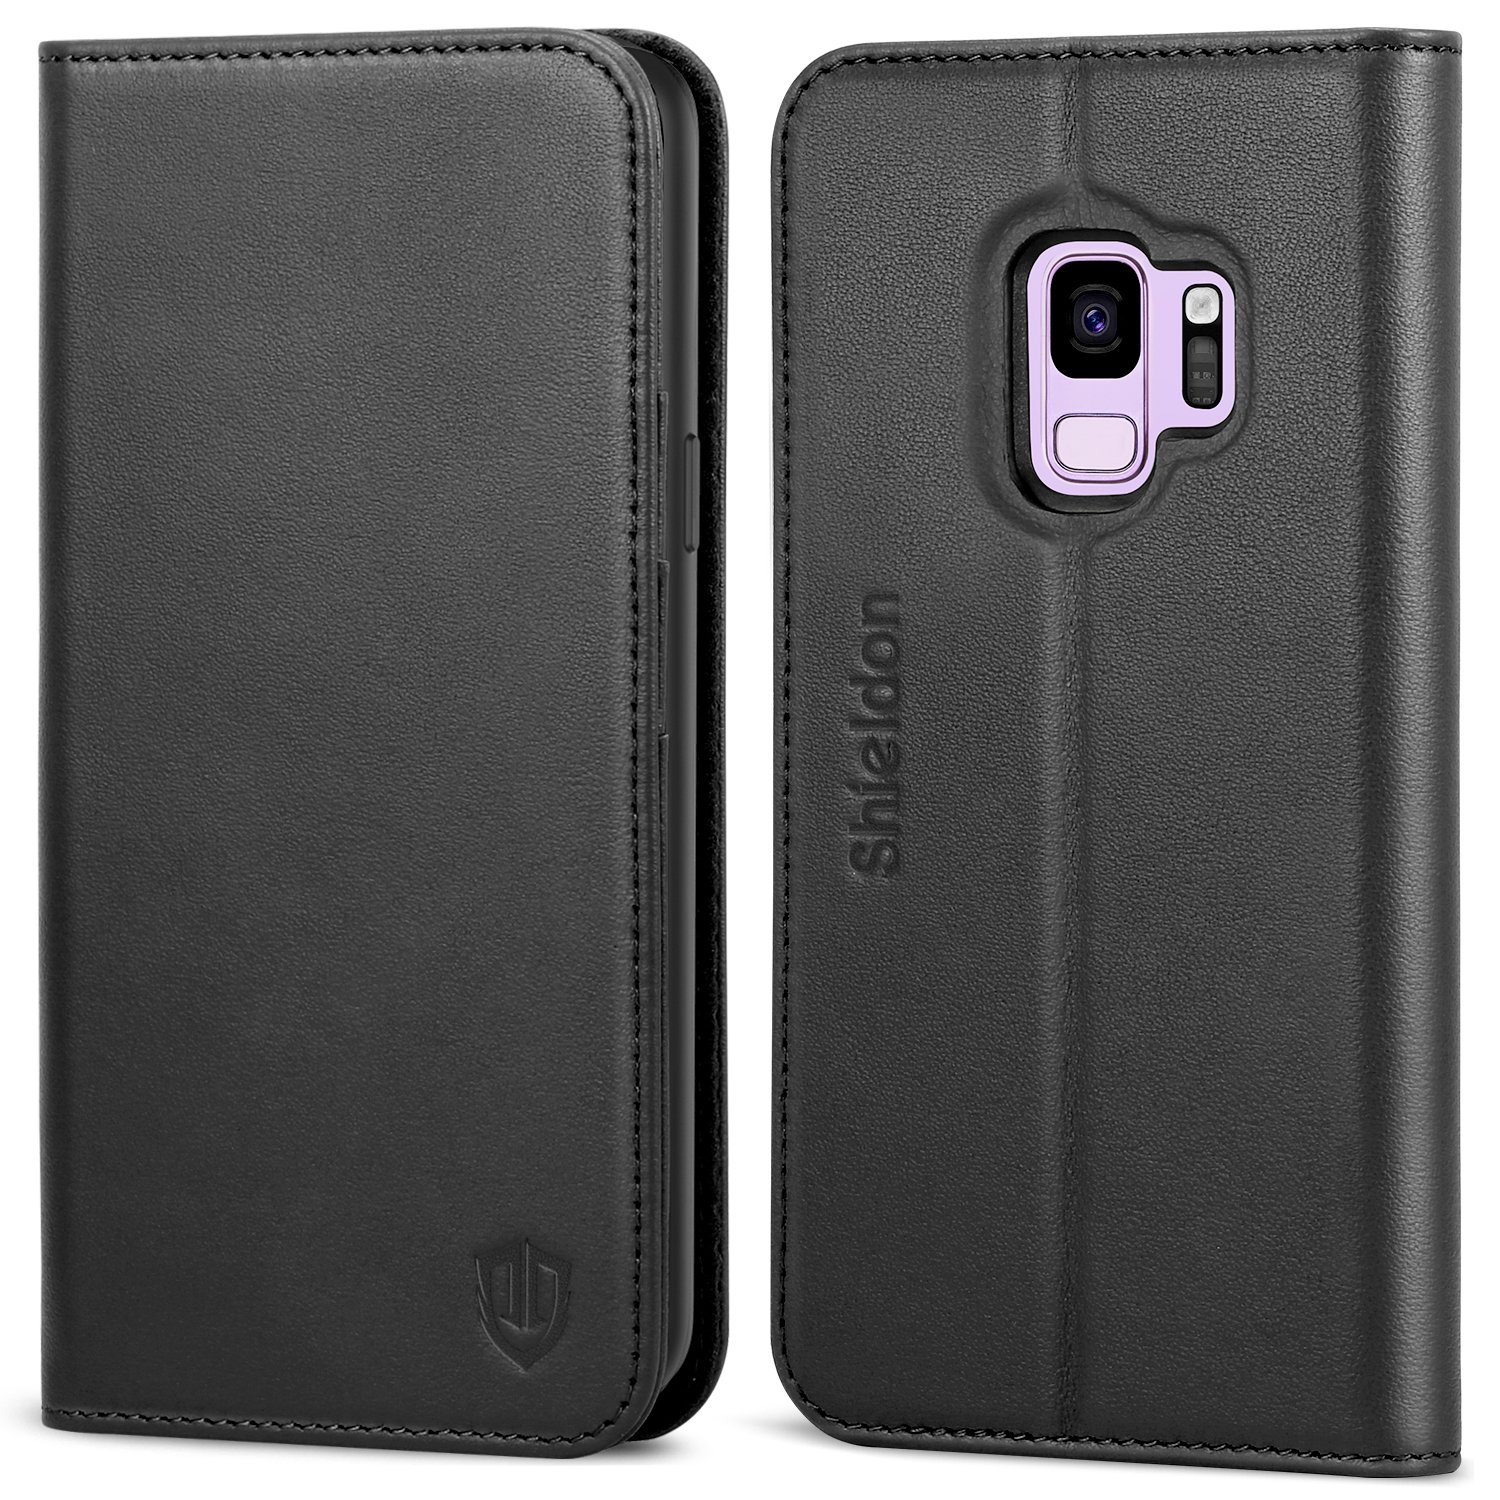 Galaxy S9 Case, SHIELDON Genuine Leather Premium Galaxy S9 Wallet Case [Folio Cover] [Stand Feature] with Credit Card Slots Full Protection Case for Samsung Galaxy S9 5.8'' (2018 Release) - Black